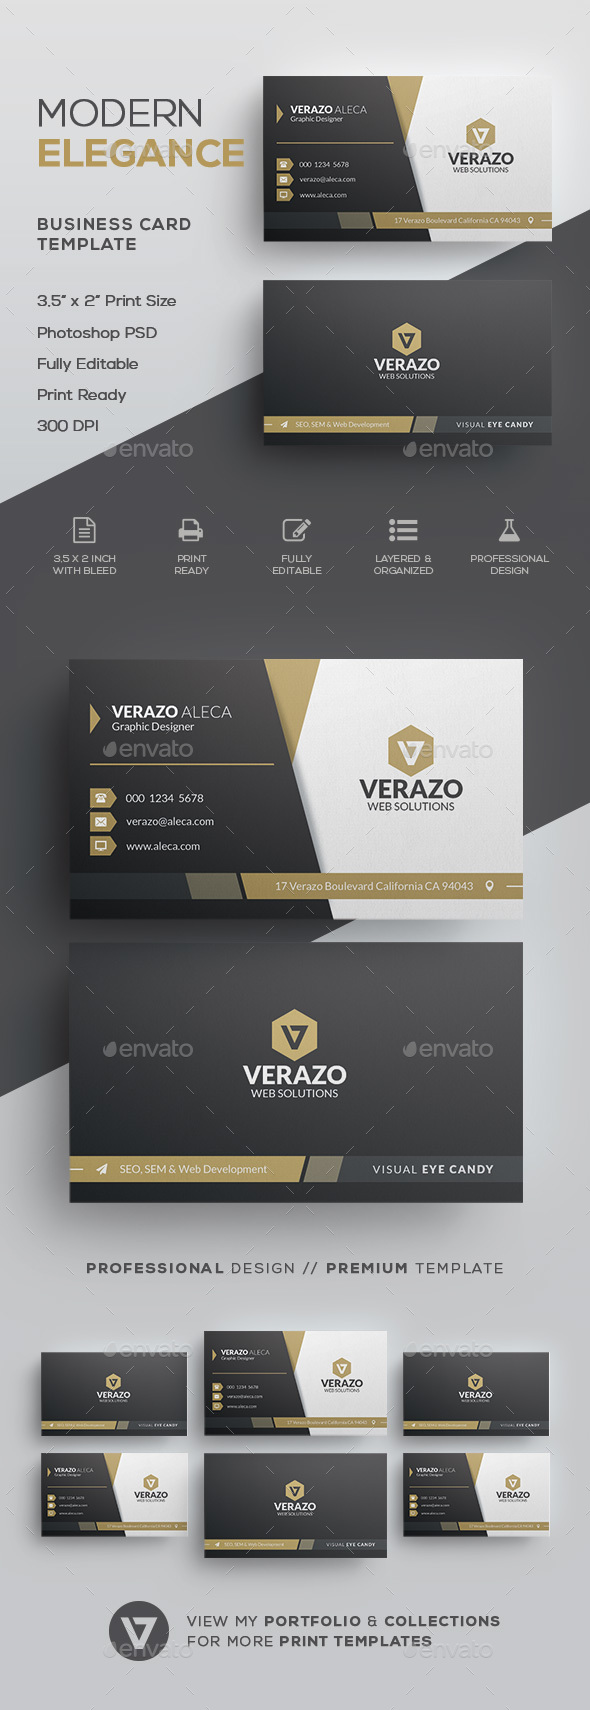 Elegant business card template by verazo graphicriver elegant business card template corporate business cards reheart Images